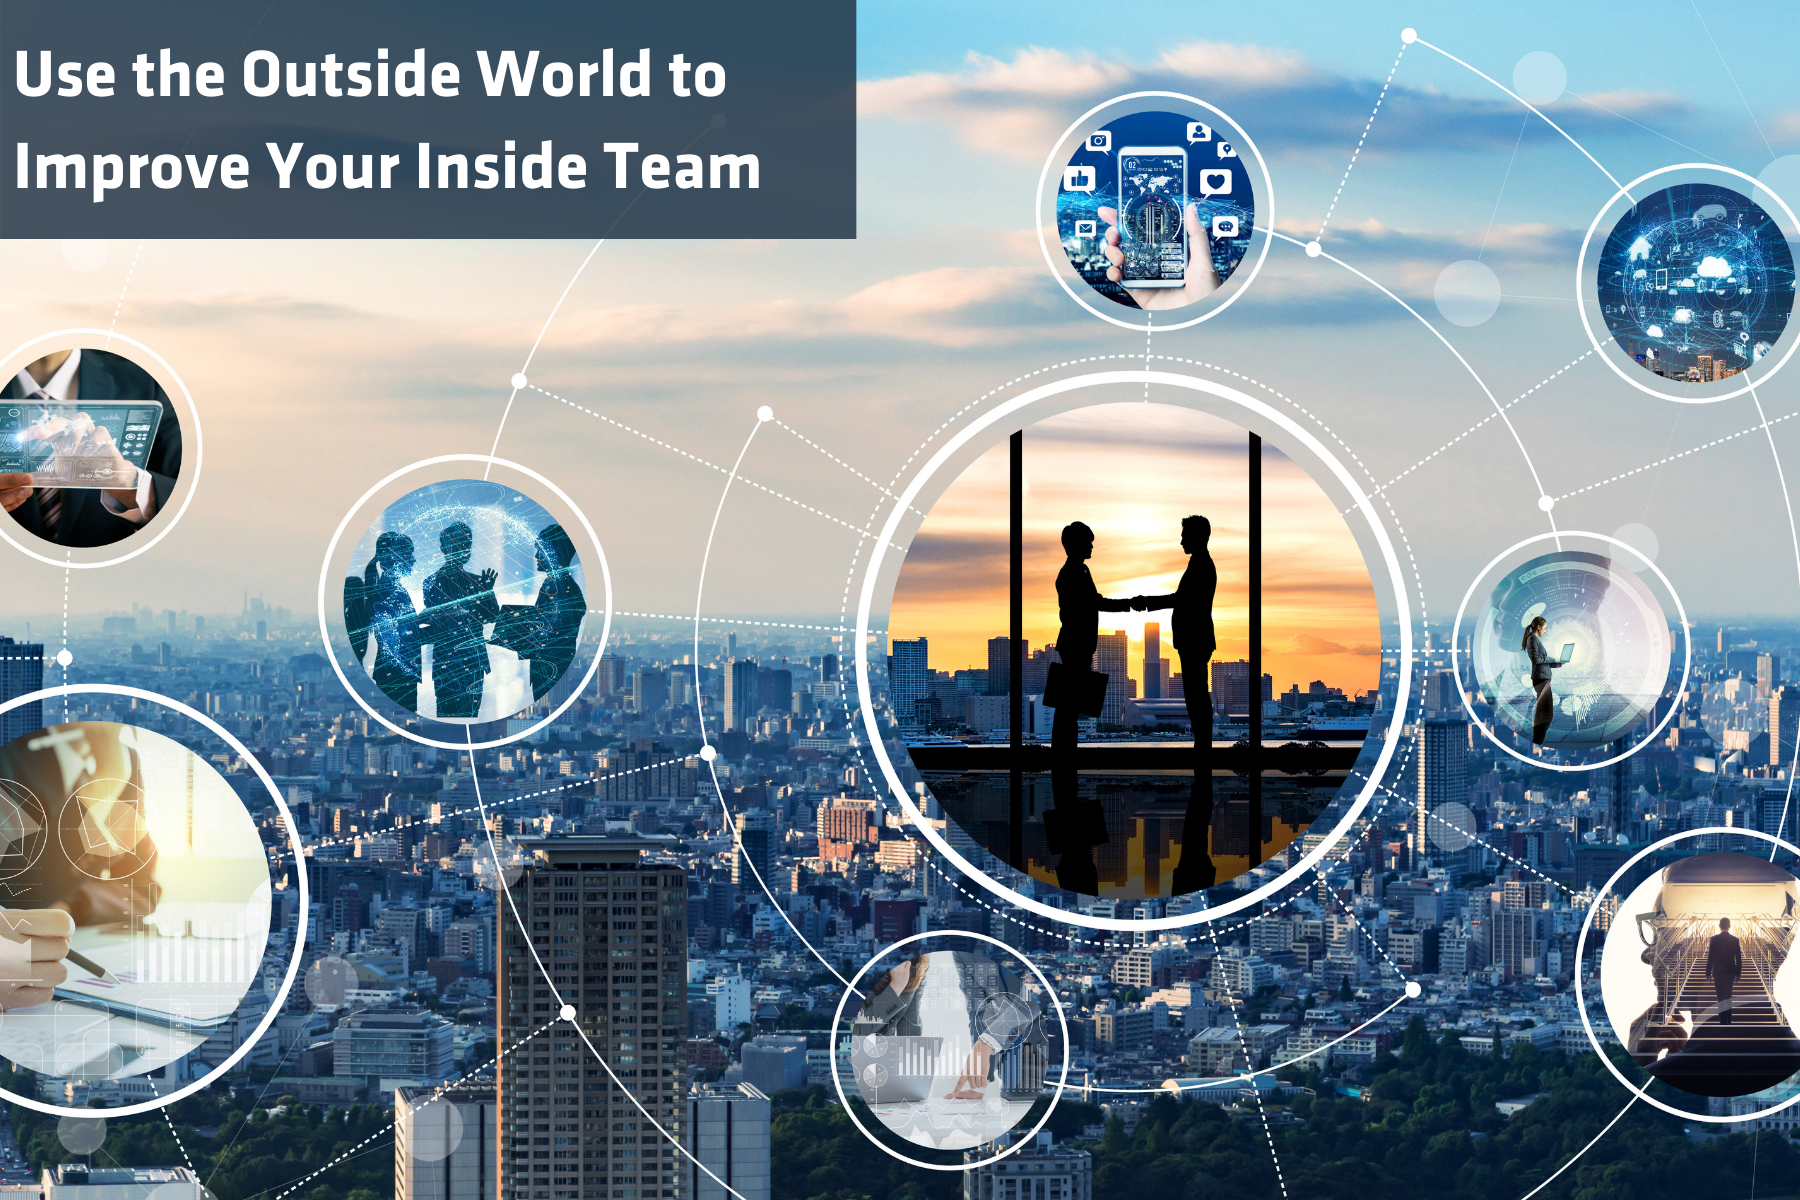 Use the outside world to improve your inside team VMS